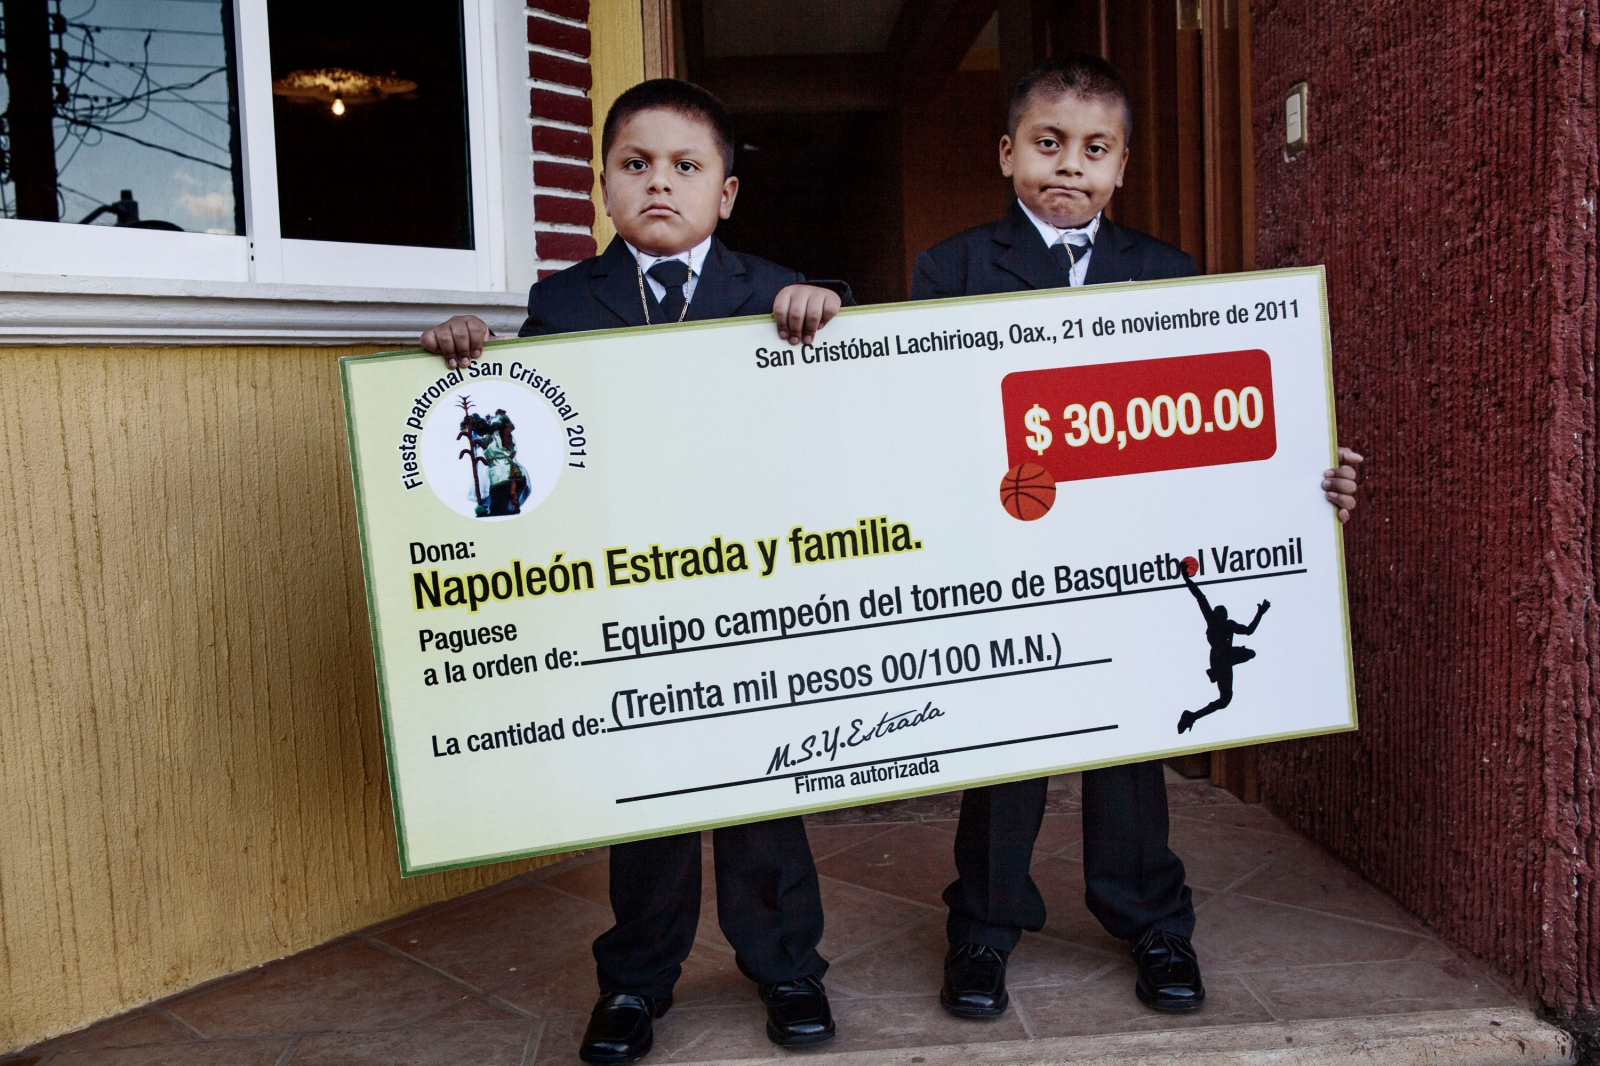 SAN CRISTÓBAL LACHIRIOAG, NOVEMBER 19, 2011. Left, Saul Estrada Pablo, age 4; right, Martin Estrada Pablo, age 6. Both boys are sons of Napoleon Estrada, a migrant living in Escondido, California. The boys are American citizens, but their father is in the U.S. illegally. Afraid of not being able to recross the border if he returned to Mexico, Napoleon Estrada sent his sons- who had never been to Mexico- to award the $30,000 peso prize he was donating for first plaze in the basquetbol tournament. Photo taken in San Cristobal Lachirioag on November 21st, 2011.